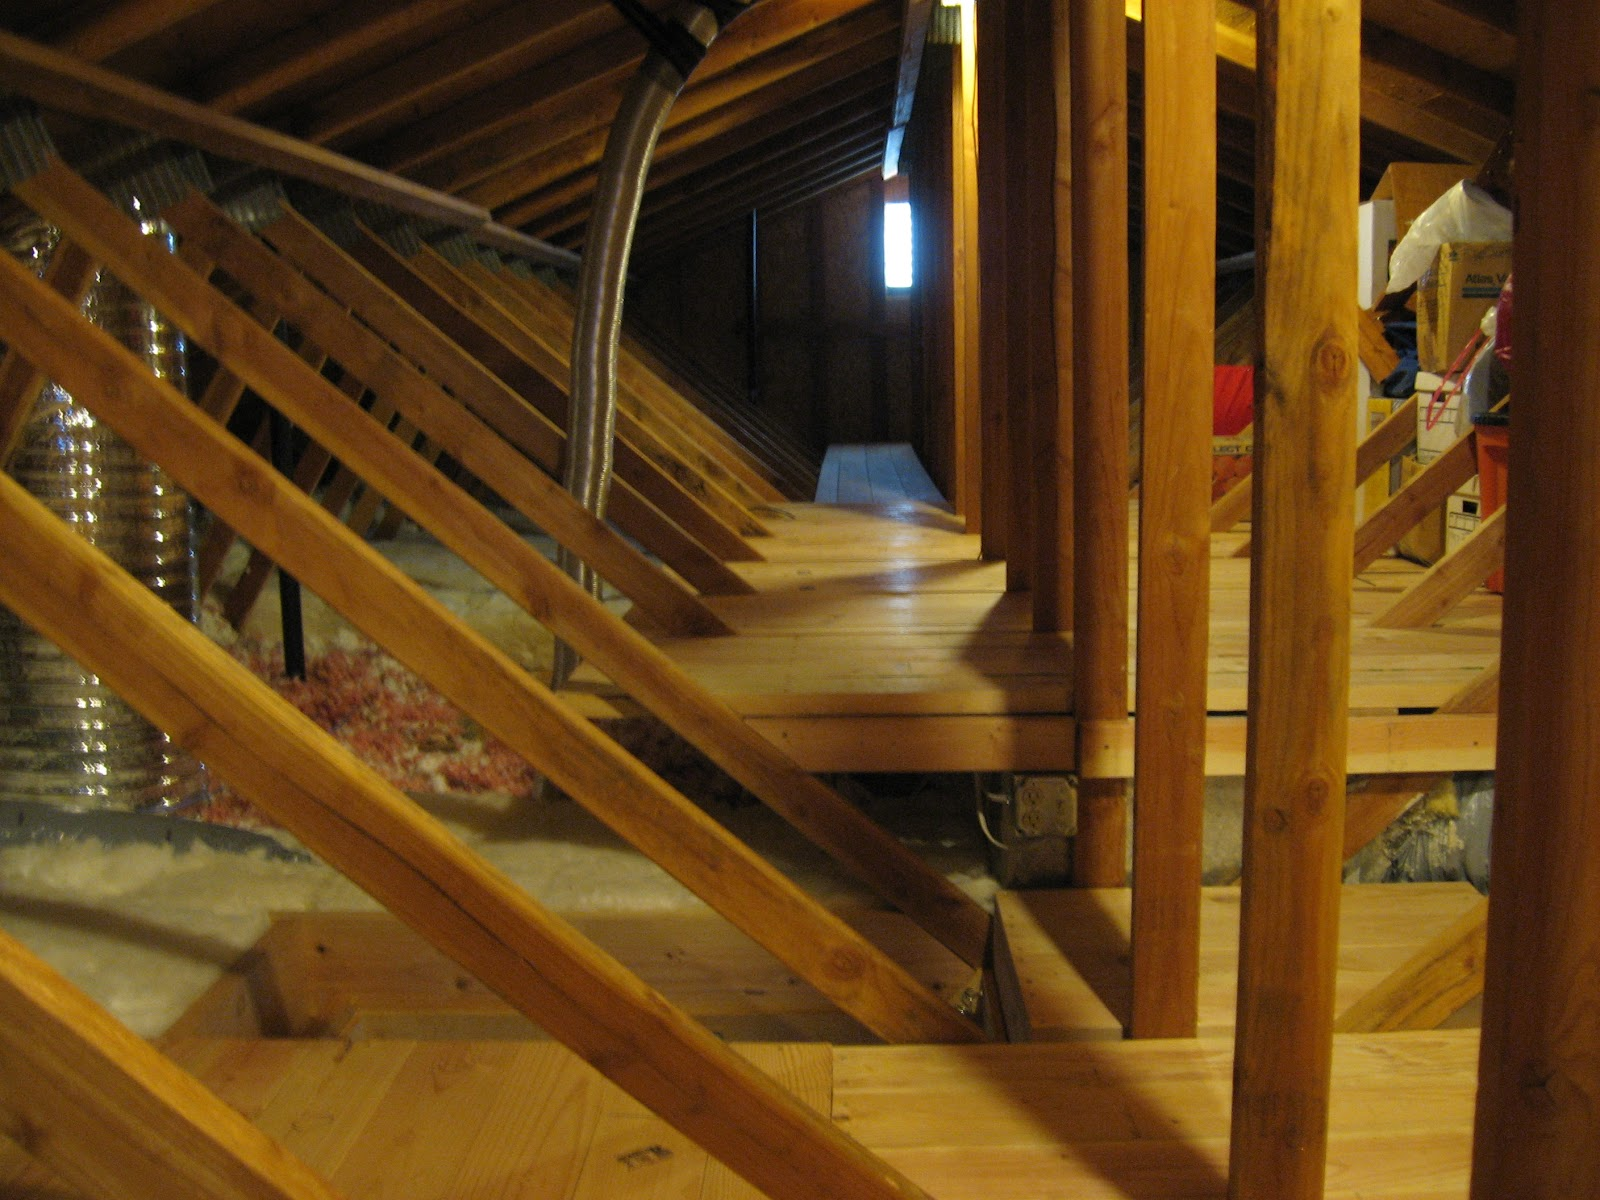 xxxii door sifford the open house access attic update sojournal a